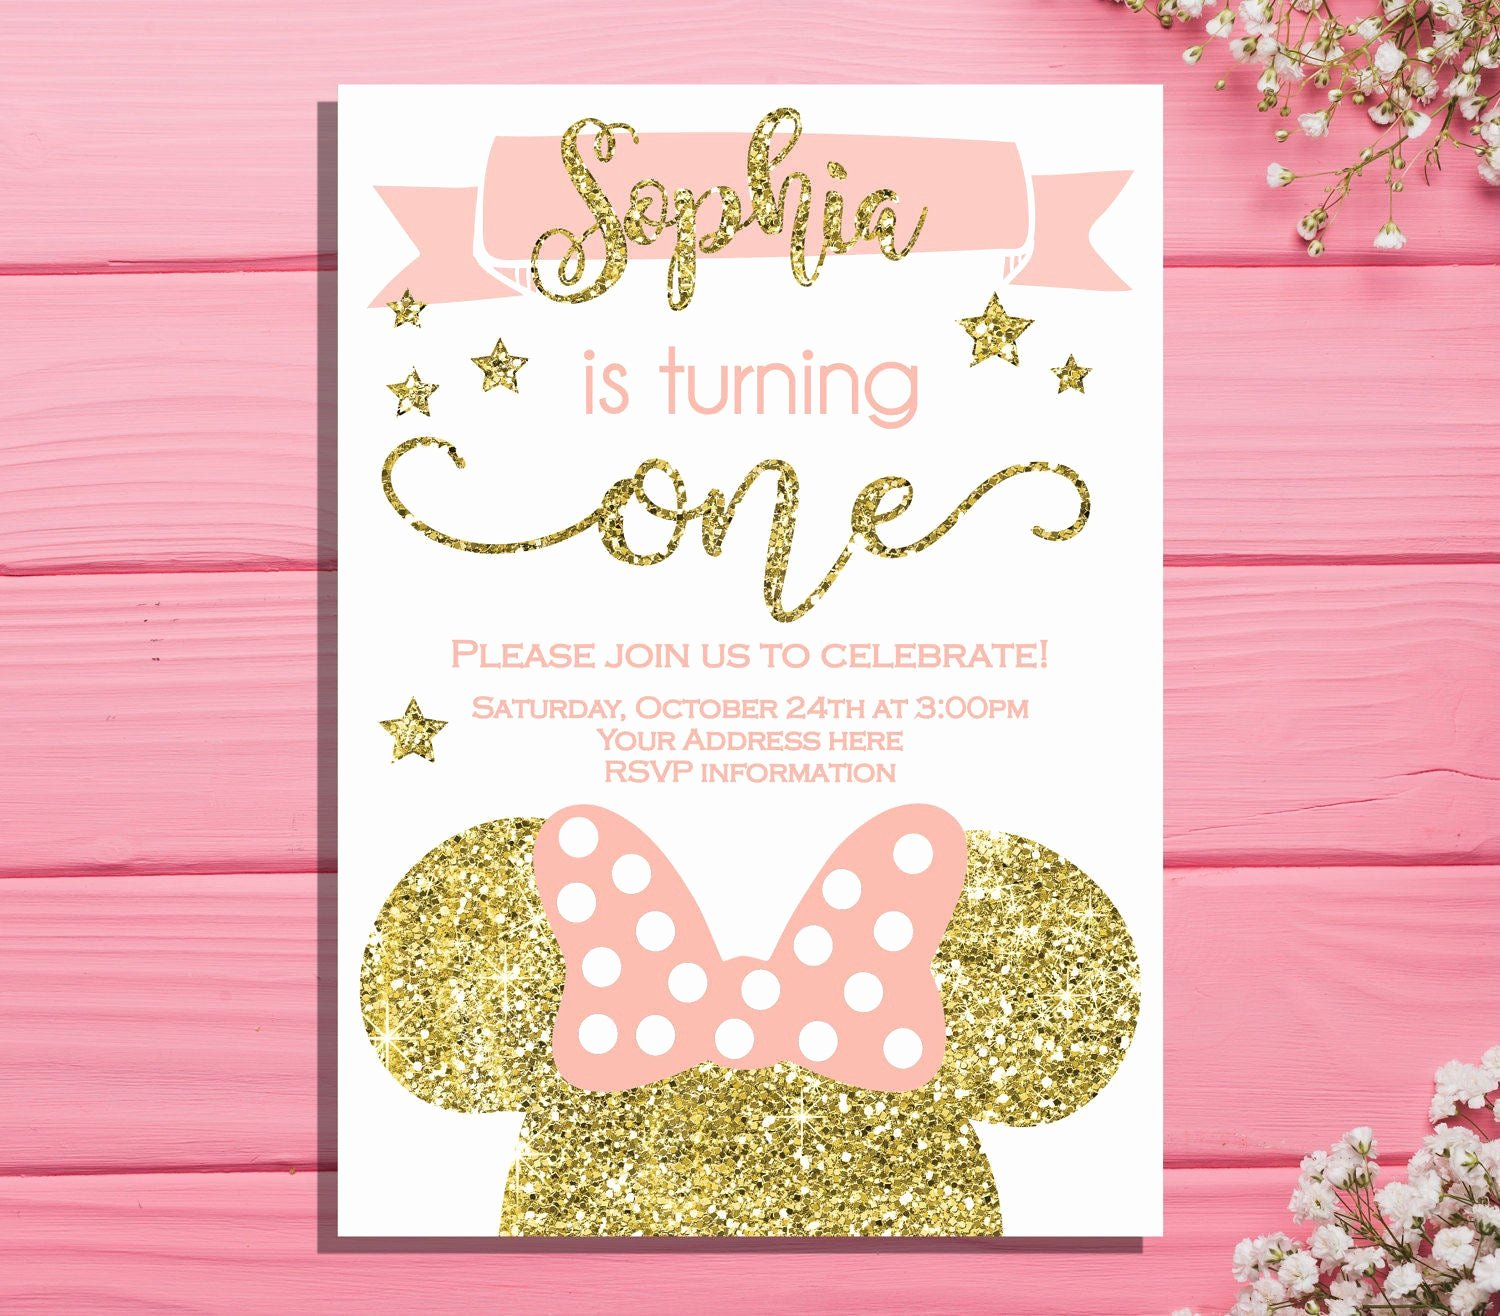 Minnie Mouse 1st Birthday Invitation Elegant Minnie Mouse First Birthday Invitation Minnie Birthday